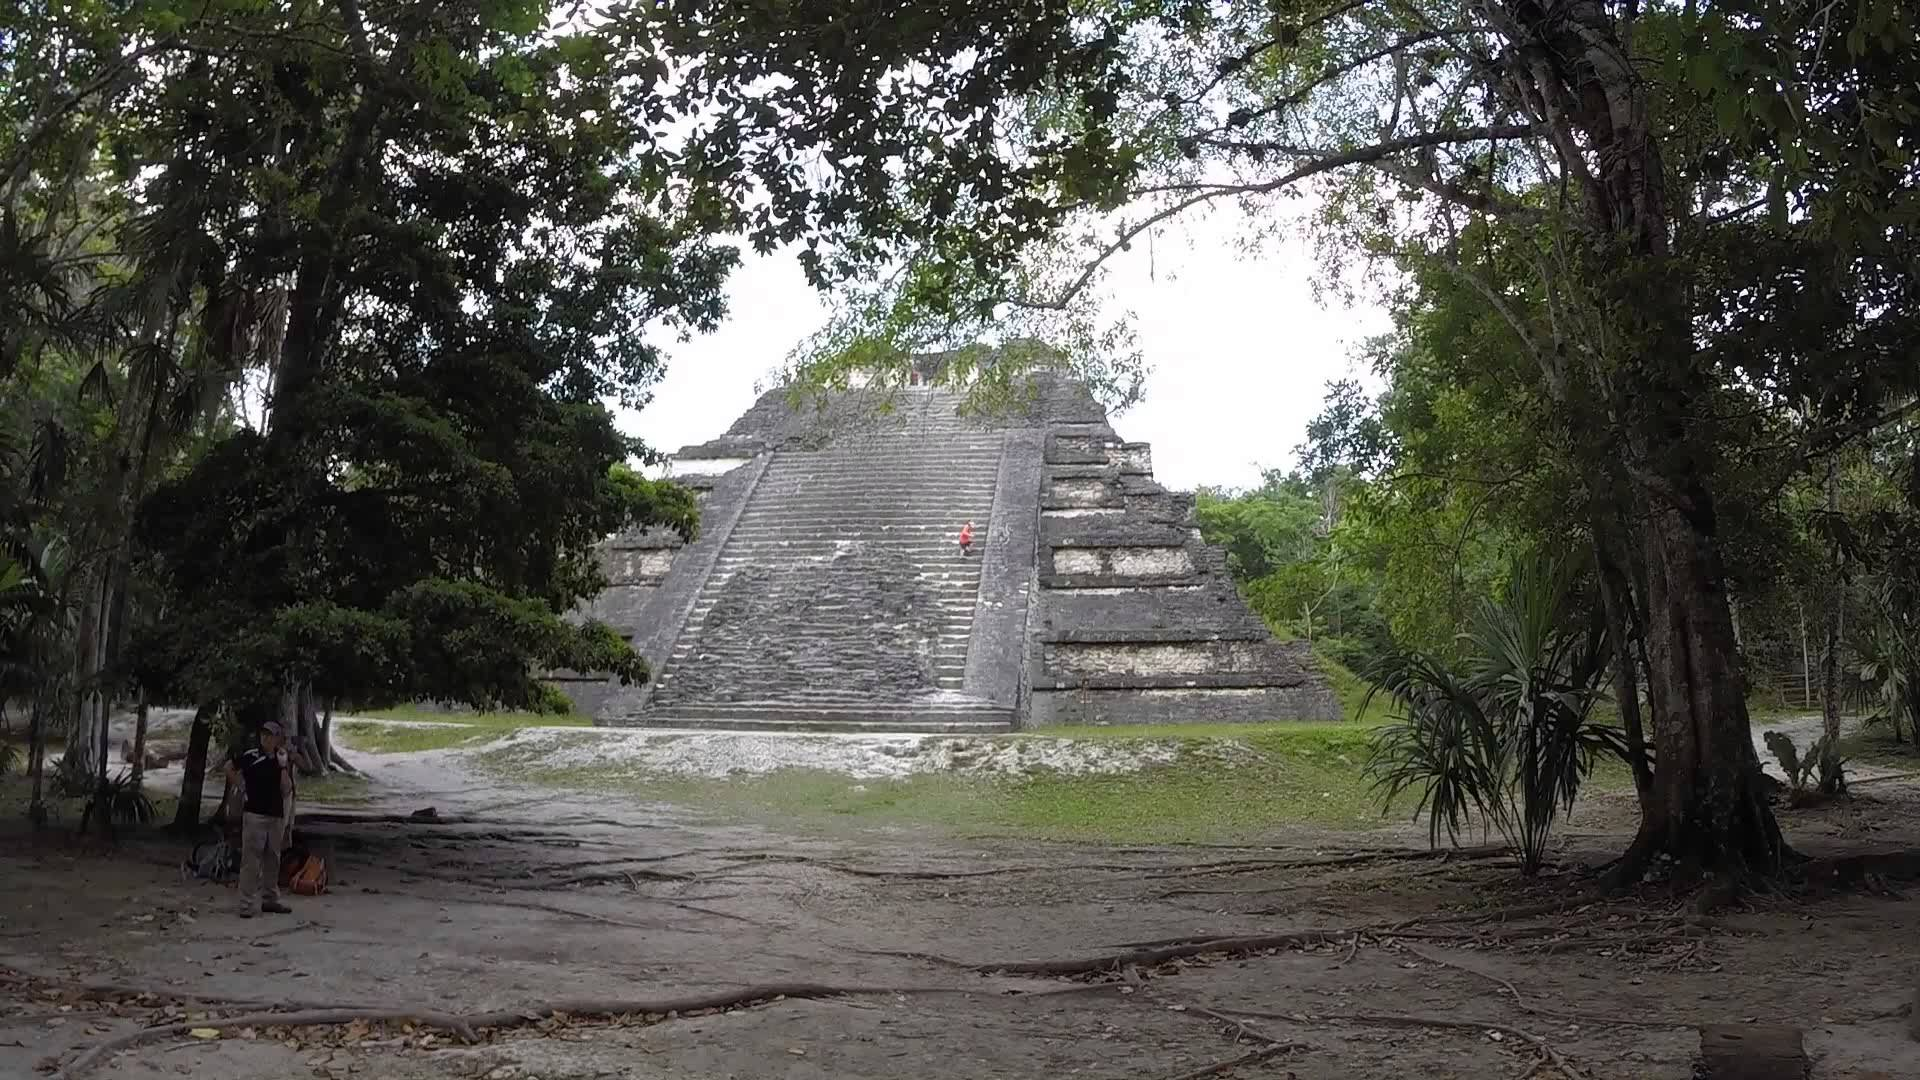 Tikal National Park (Mayan Ruins) in Guatemala - YouTube